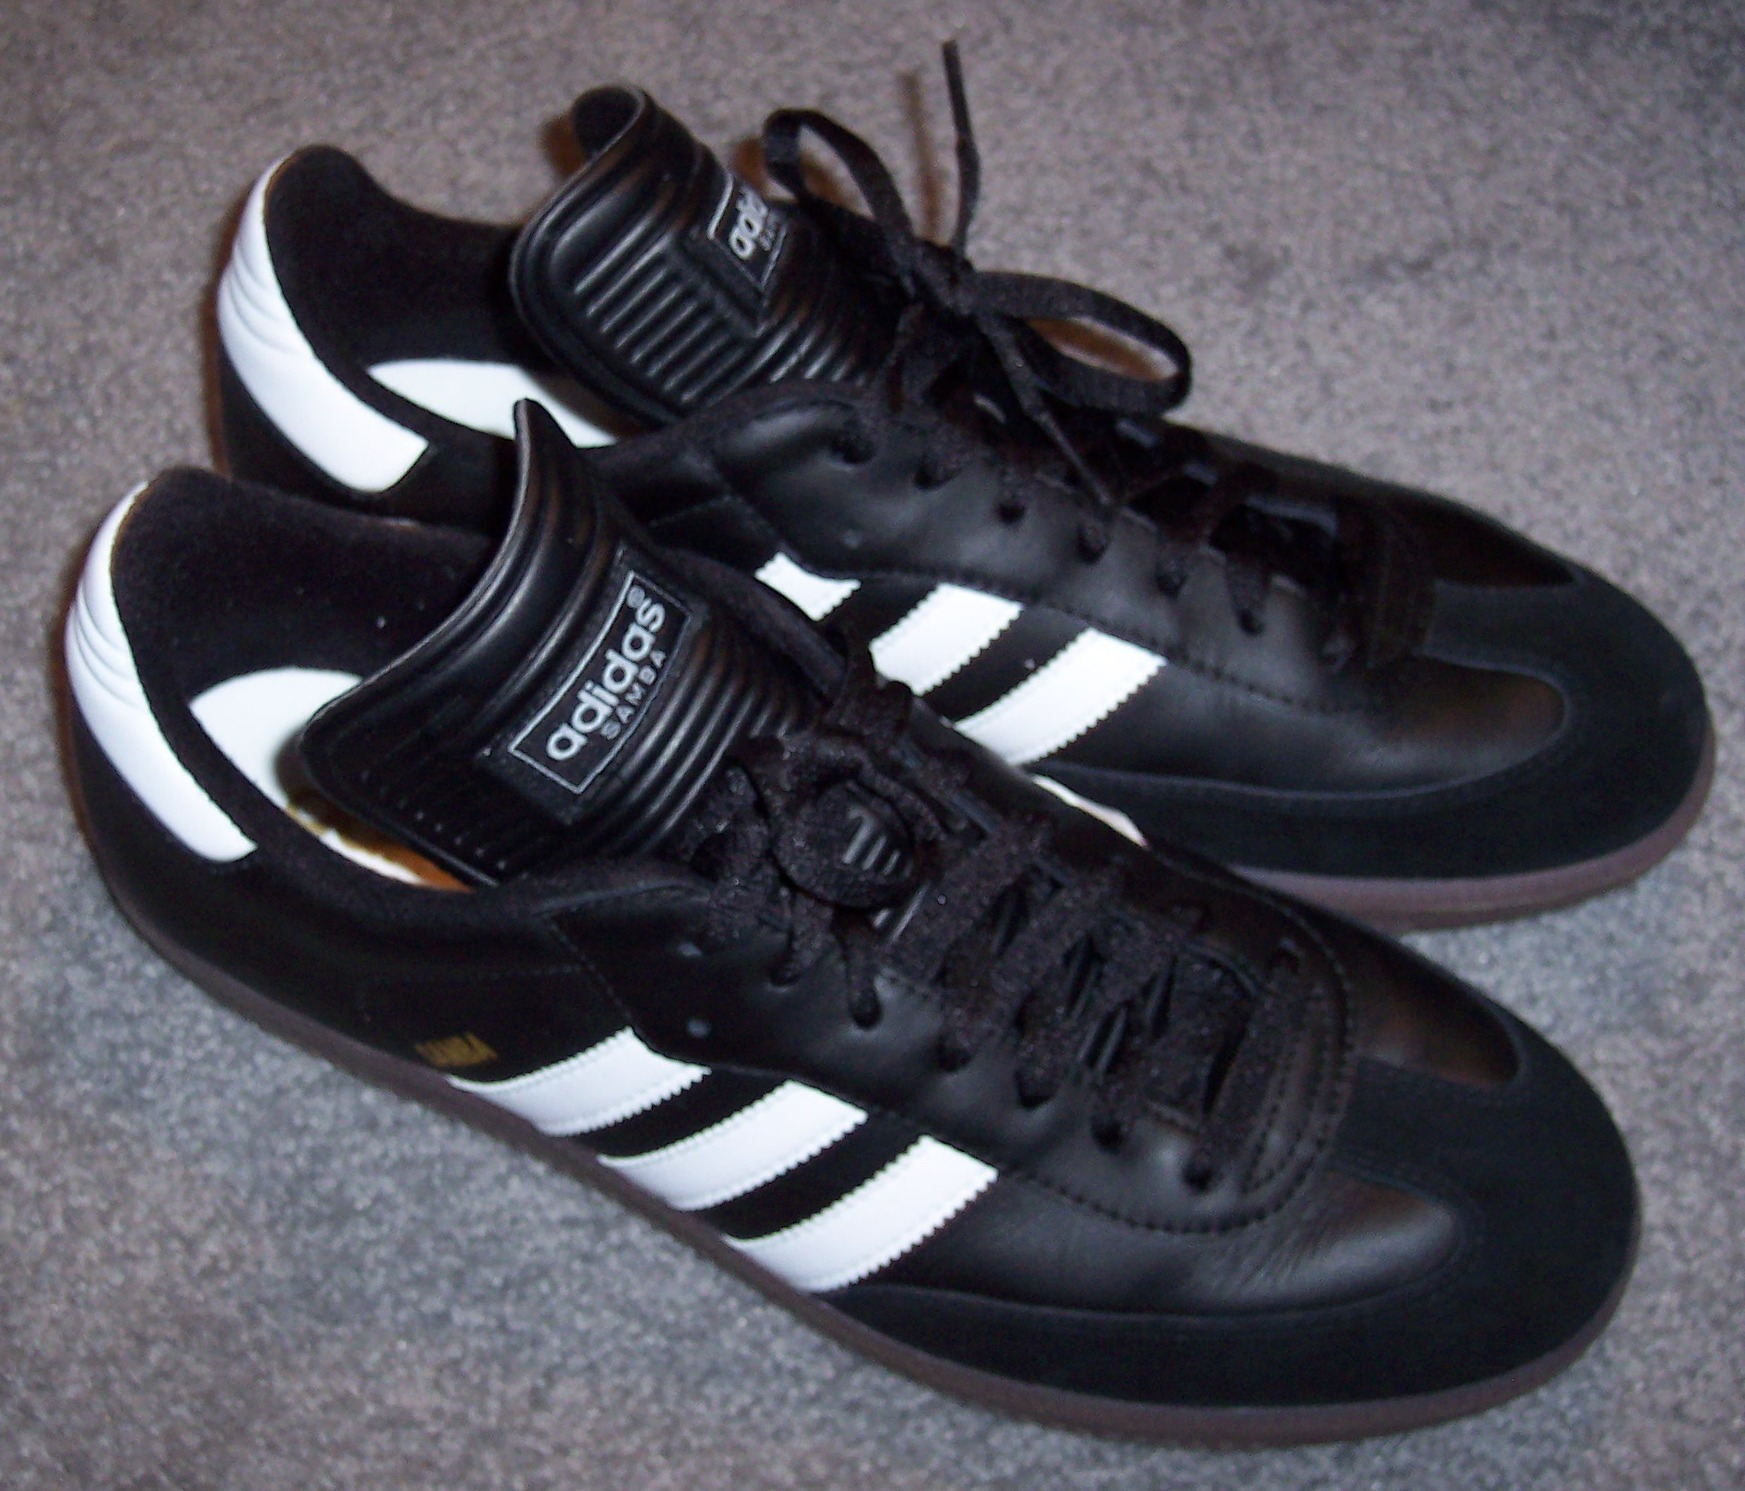 Soccer Shoes Black And Gold